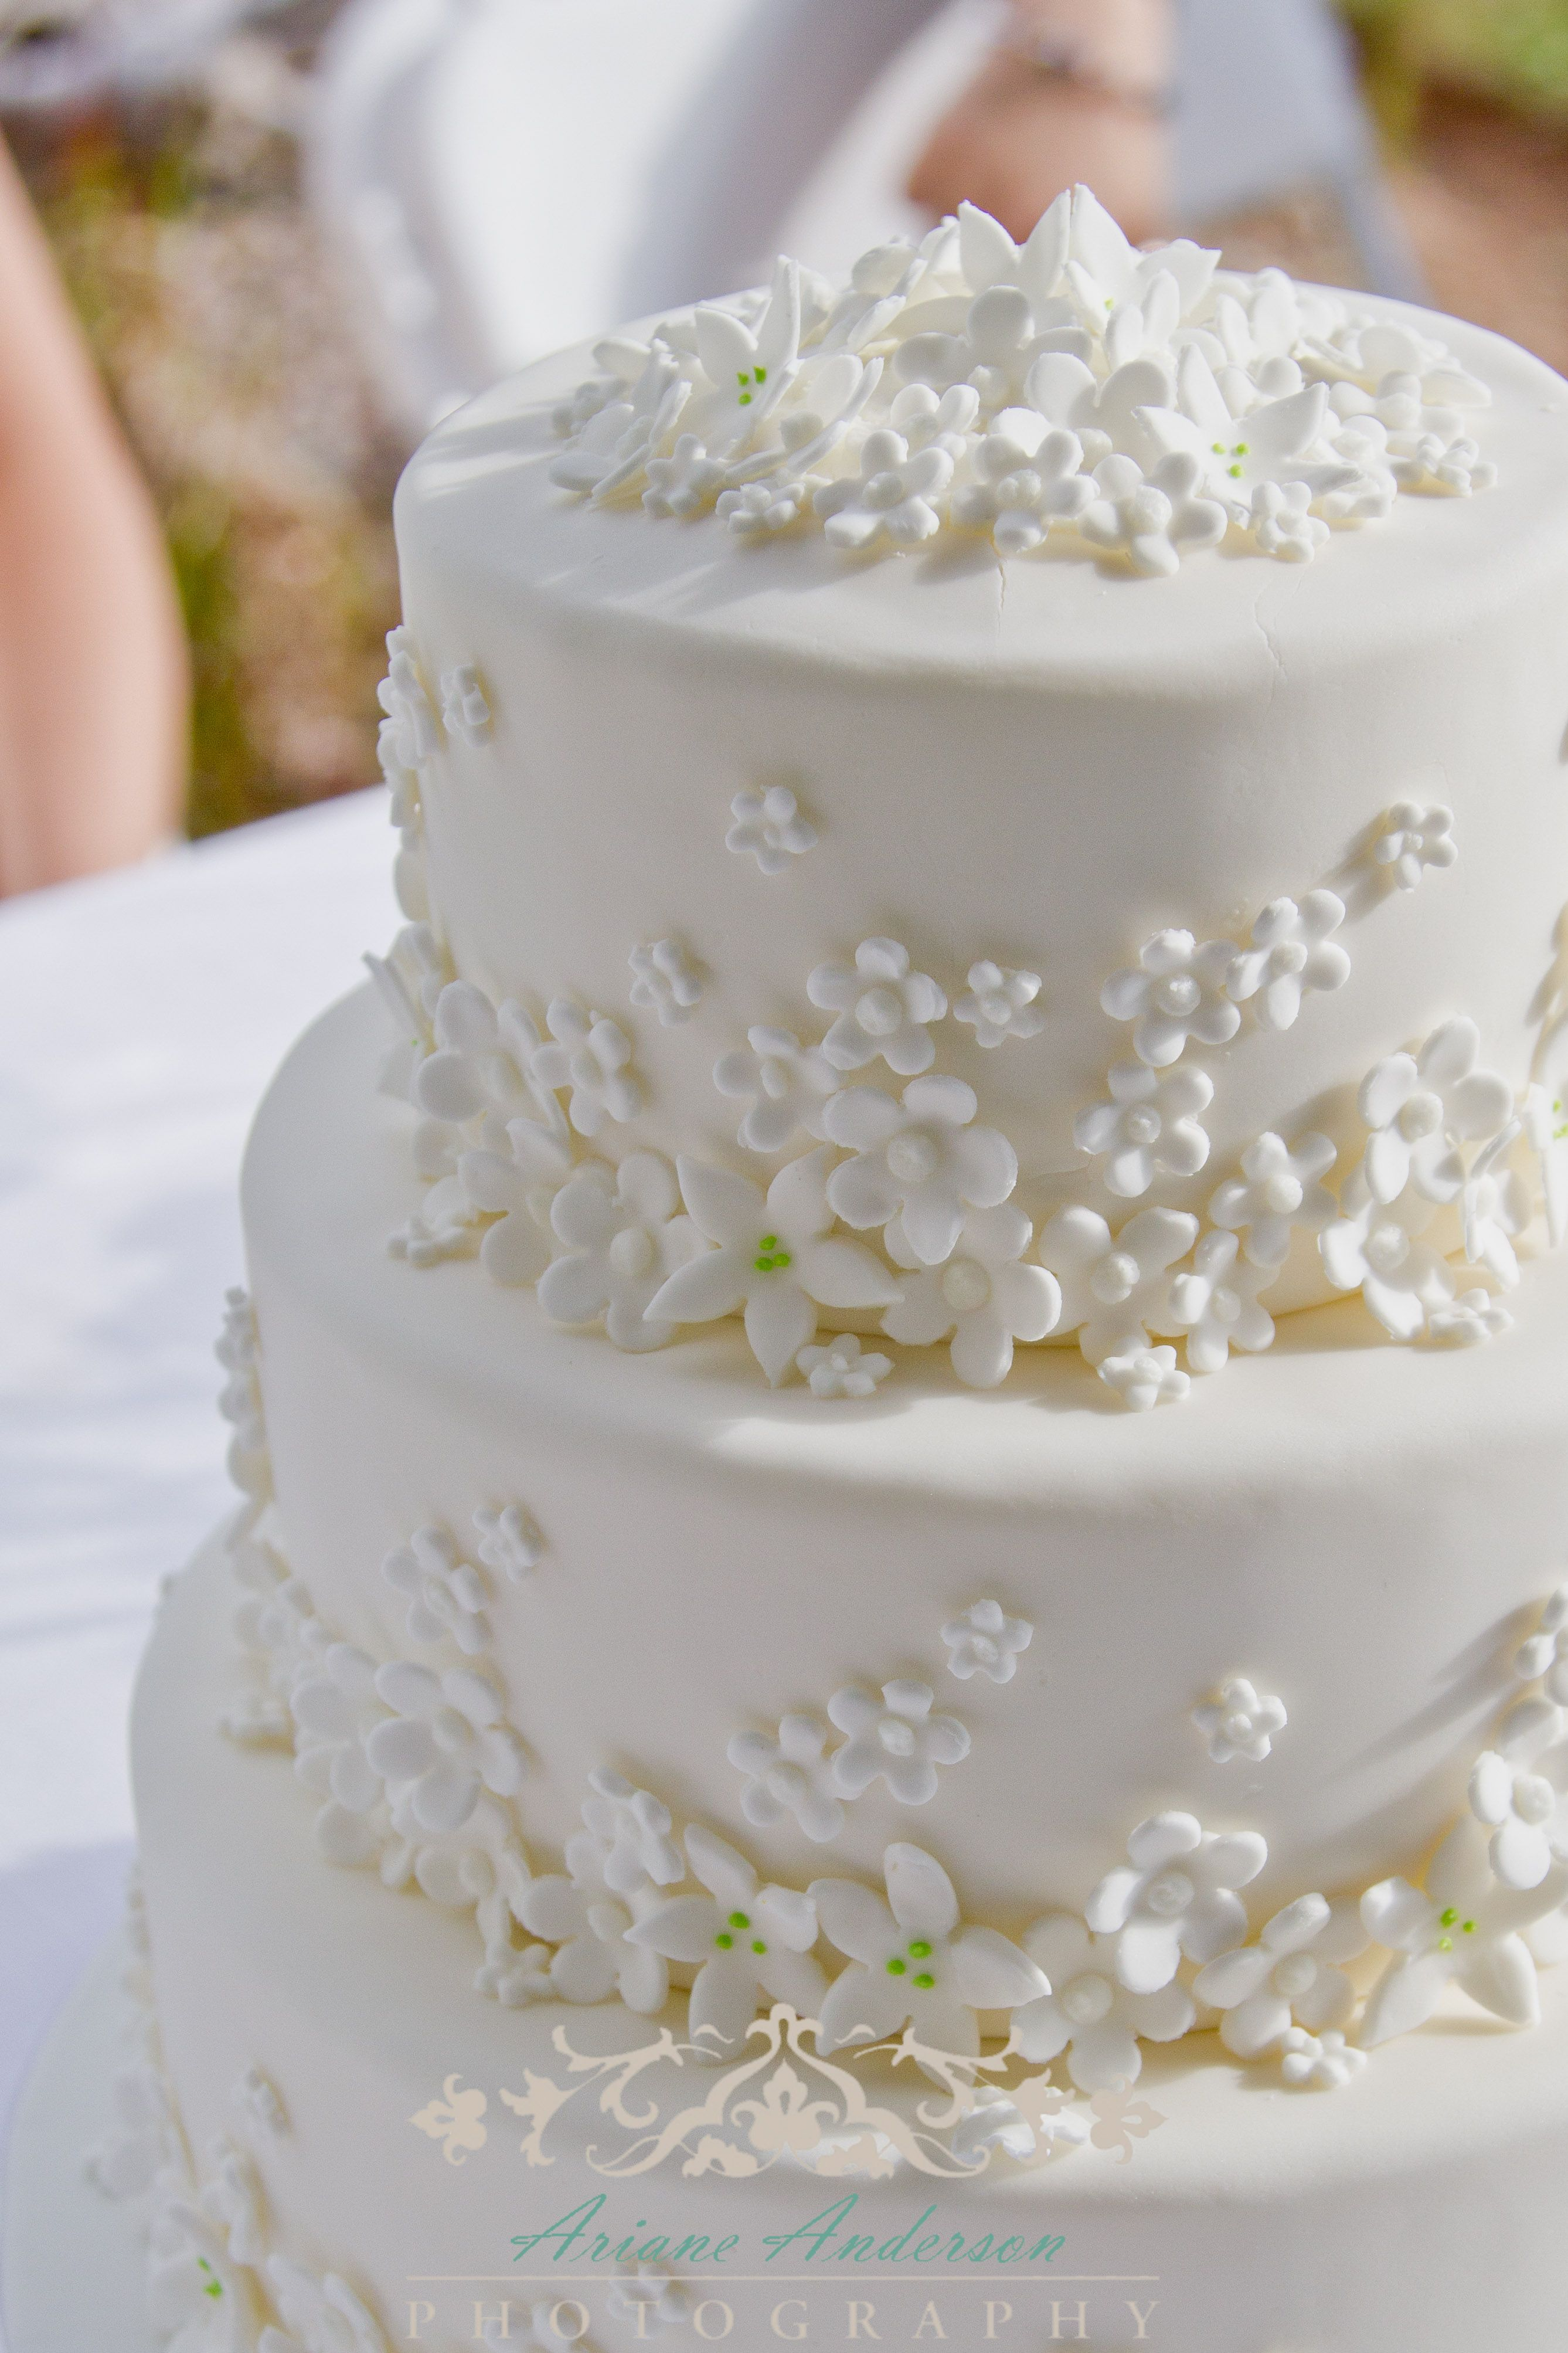 Wedding cake by Scanway Catering wedding cakes Pinterest